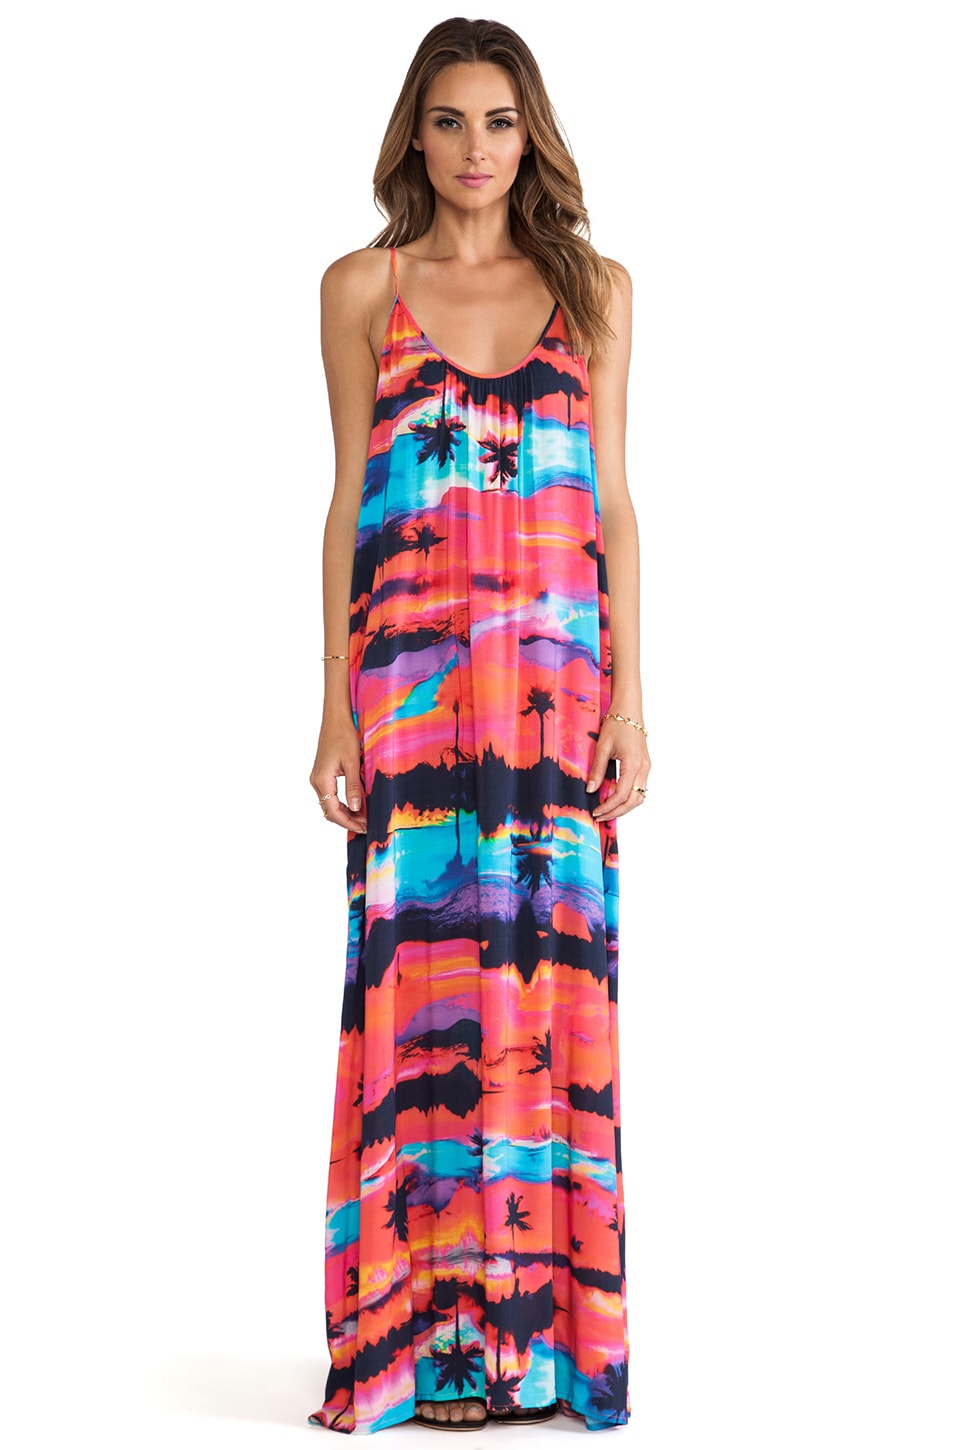 Seafolly Haiti Maxi Dress in Bright Violet